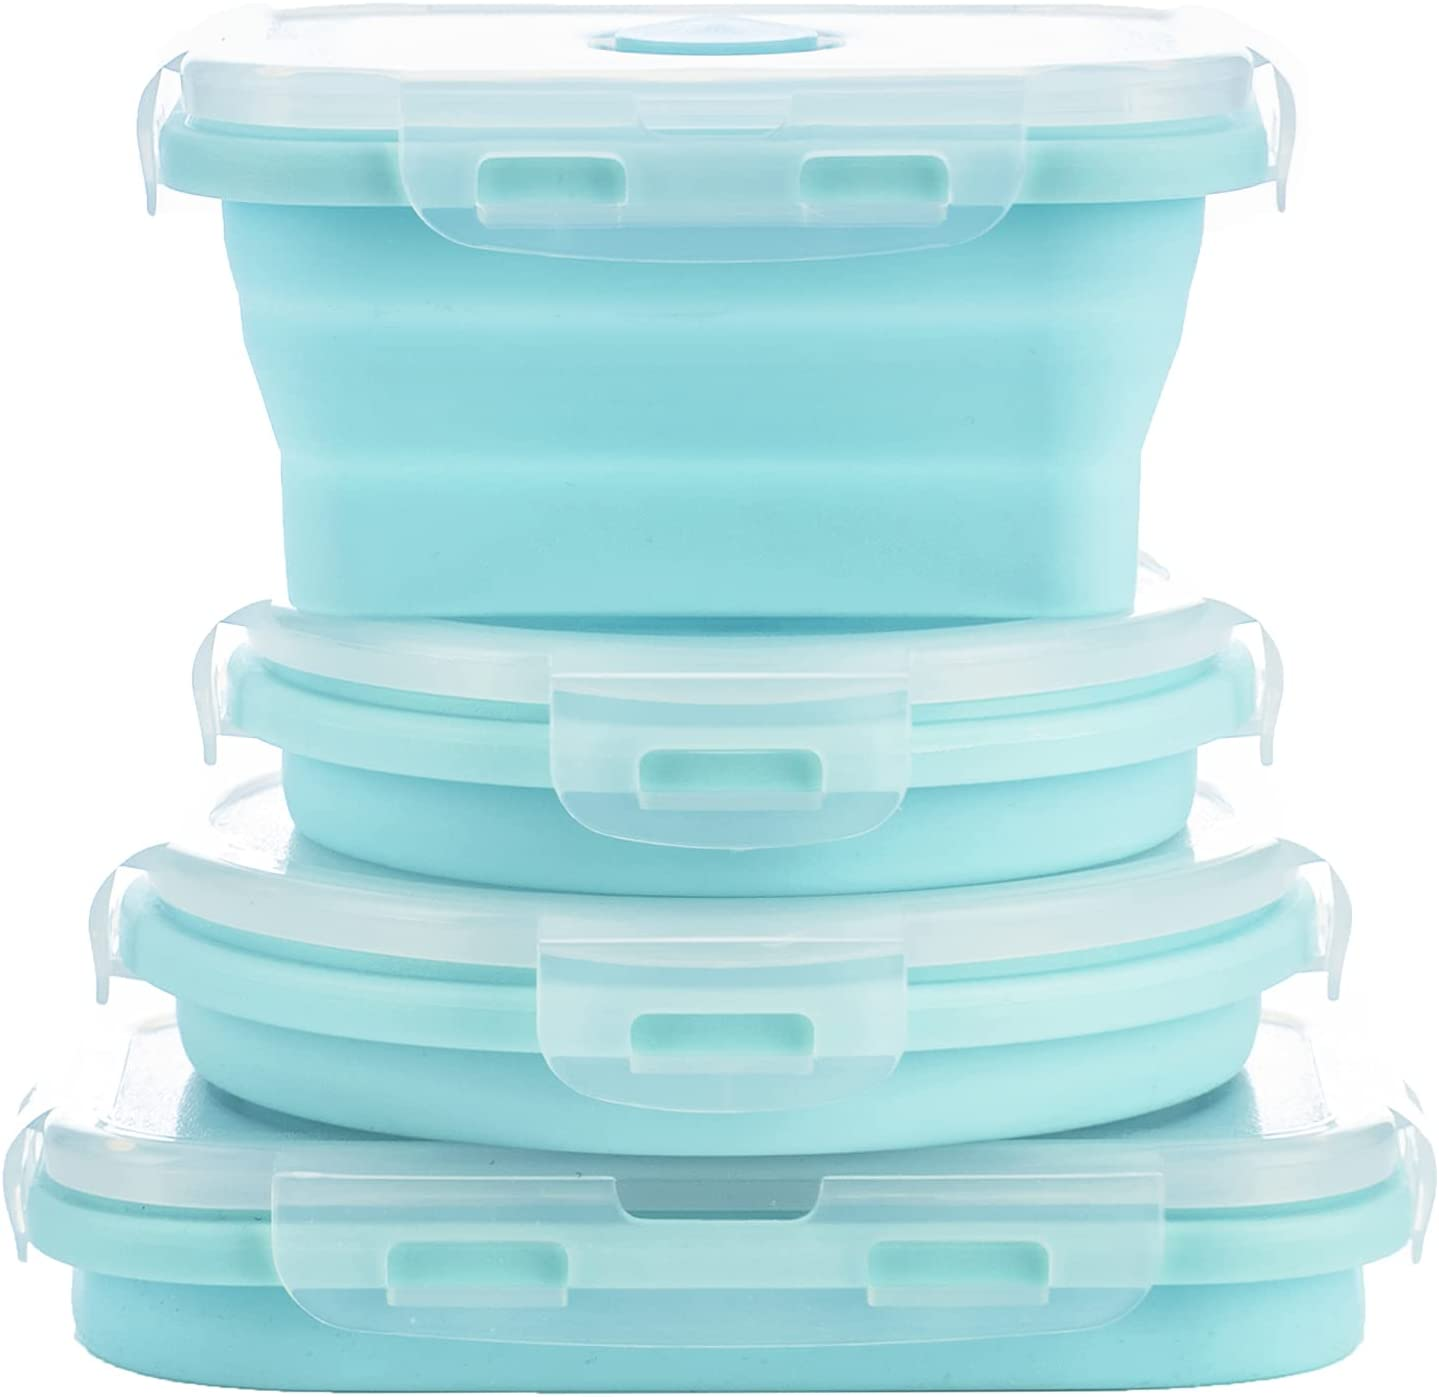 Collapsible Silicone Food Storage Containers with Airtight Lids, Set of 4 Bento Box for Kids Adults,Microwave and Freezer and Dishwasher Safe, with Vent Valve, BPA Free (Light Blue, 500ml and 800ml)